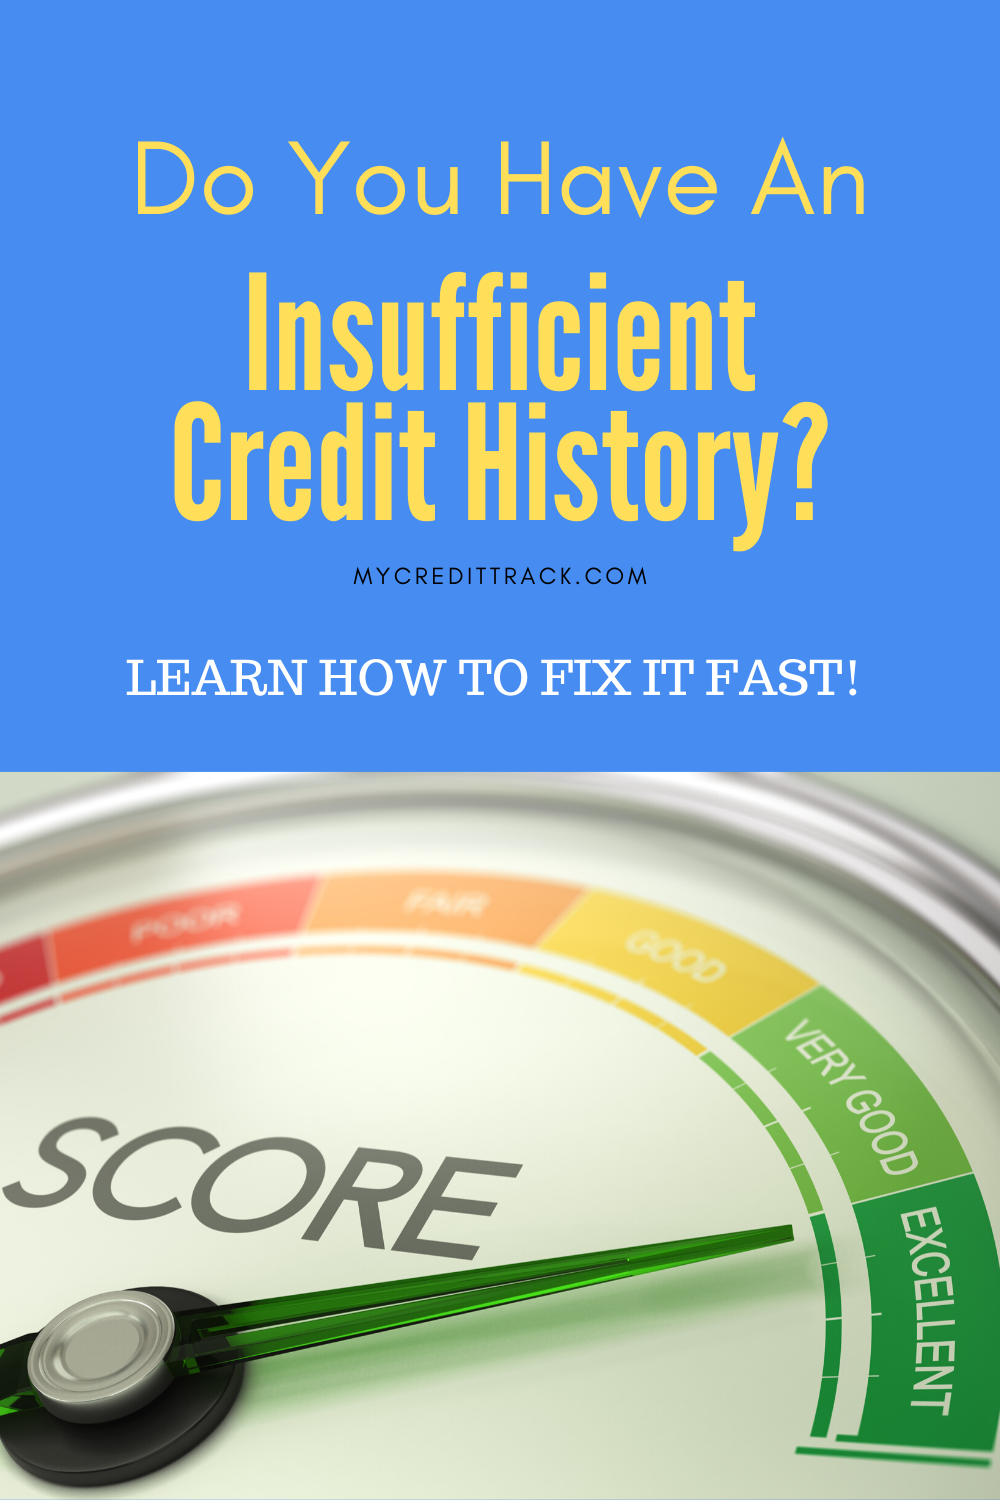 Insufficient Credit History And 8 Tips On How To Fix It Fast In 2020 Credit History Financial Motivation Finance Jobs